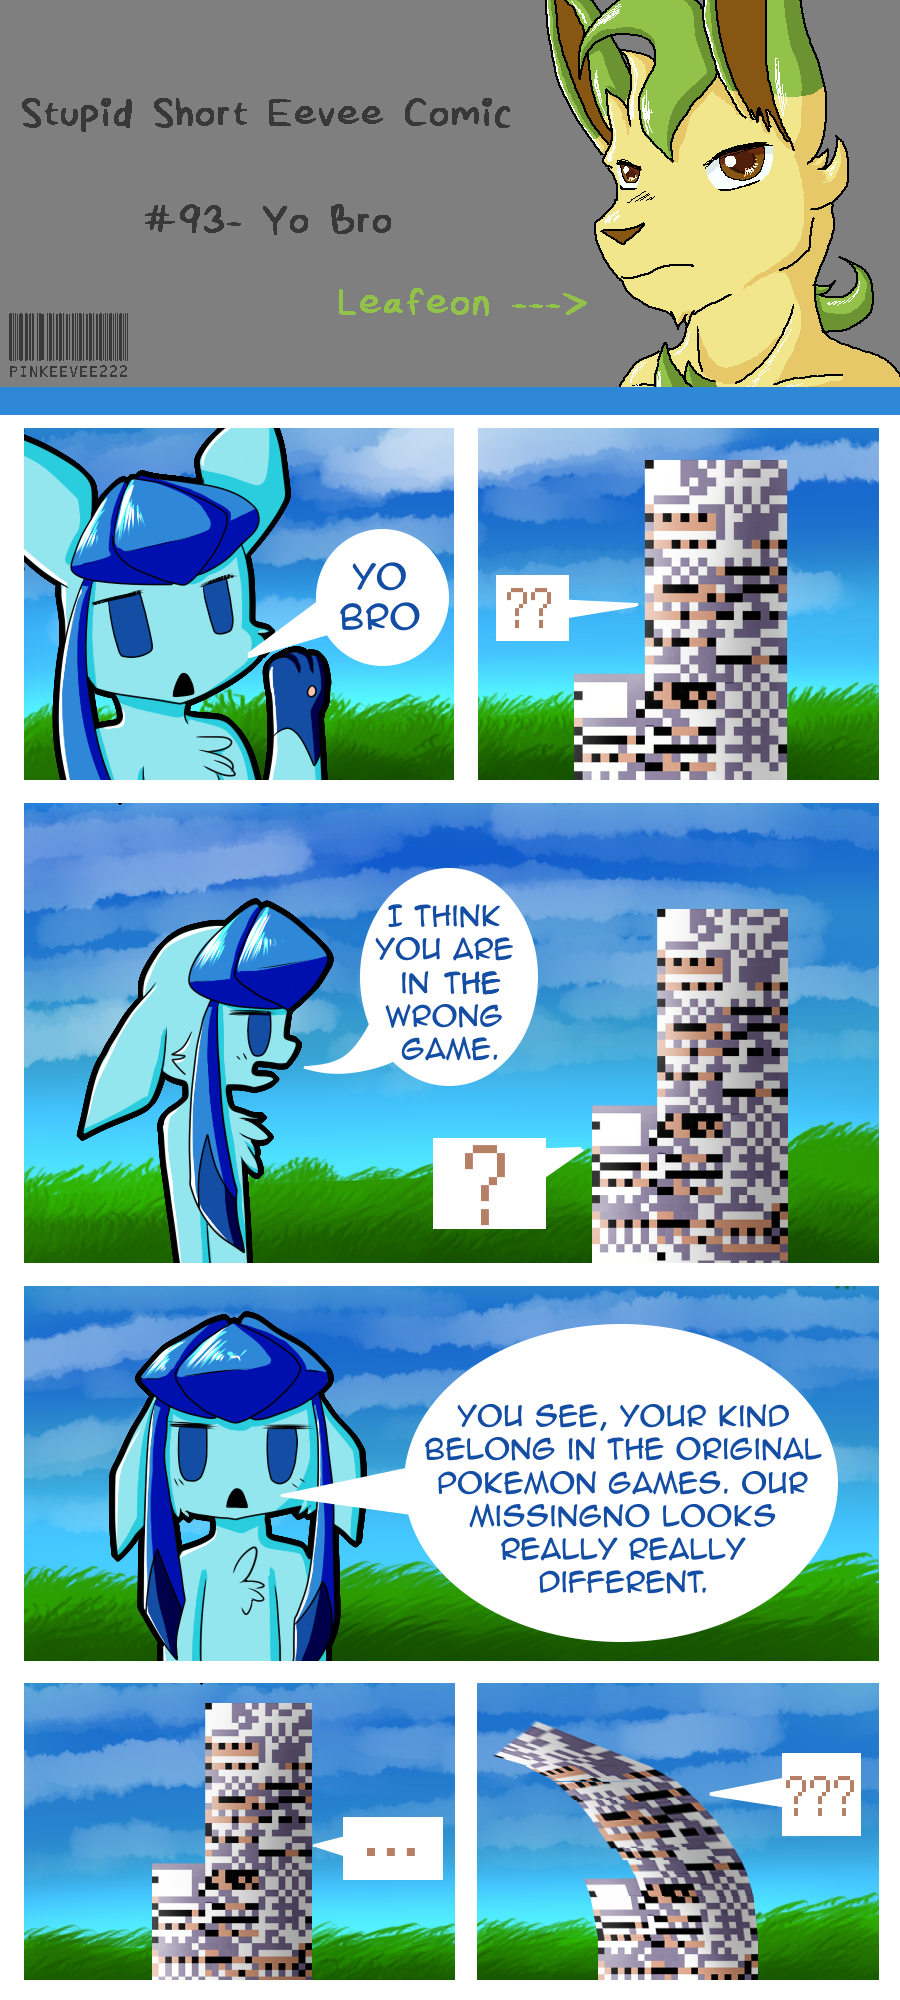 Glaceon likes breaking the fourth wall.